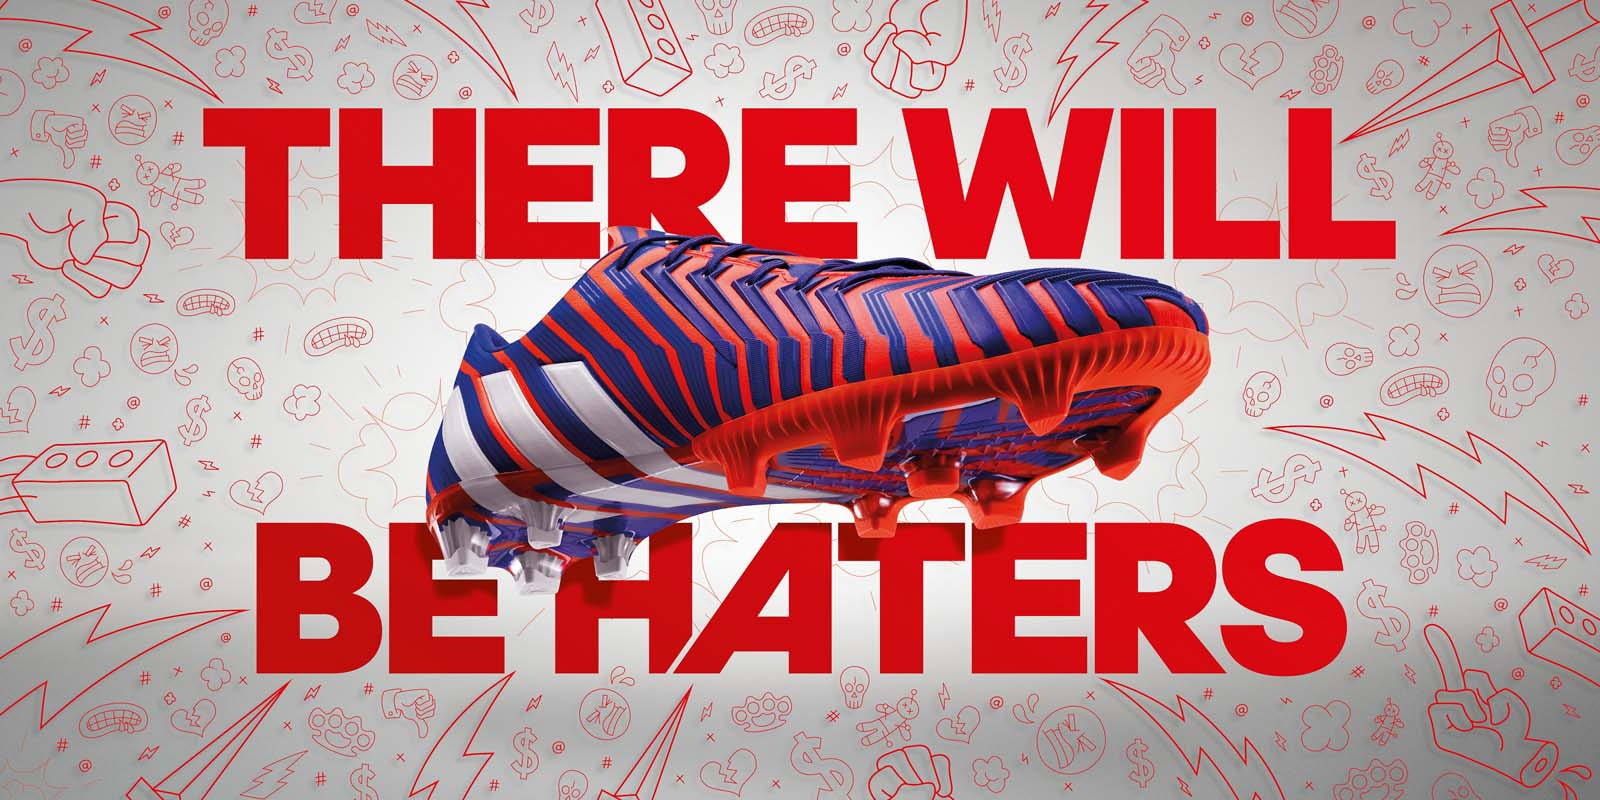 adidas fußballschuhe there will be haters